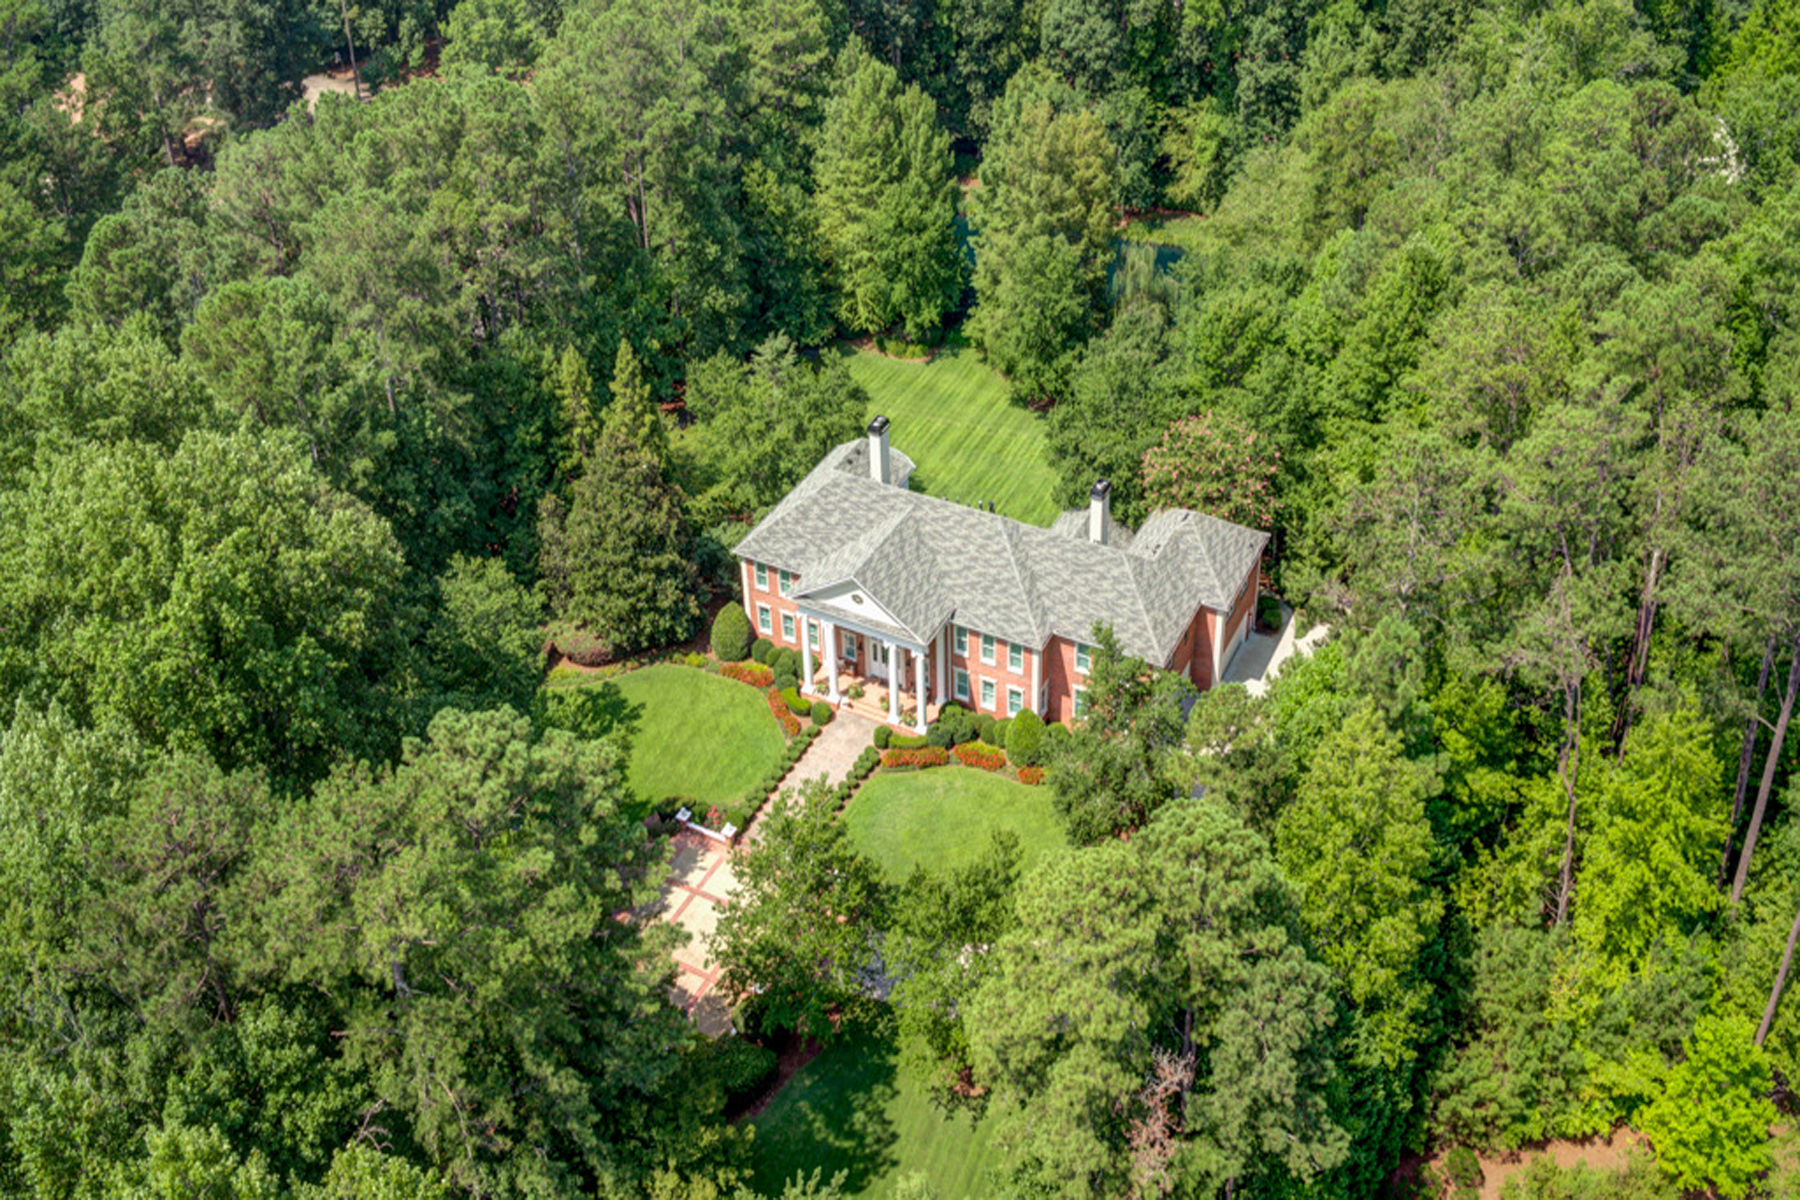 Single Family Home for Active at Meticulous Custom Built Home On Five Acres 4500 Candacraig Alpharetta, Georgia 30022 United States